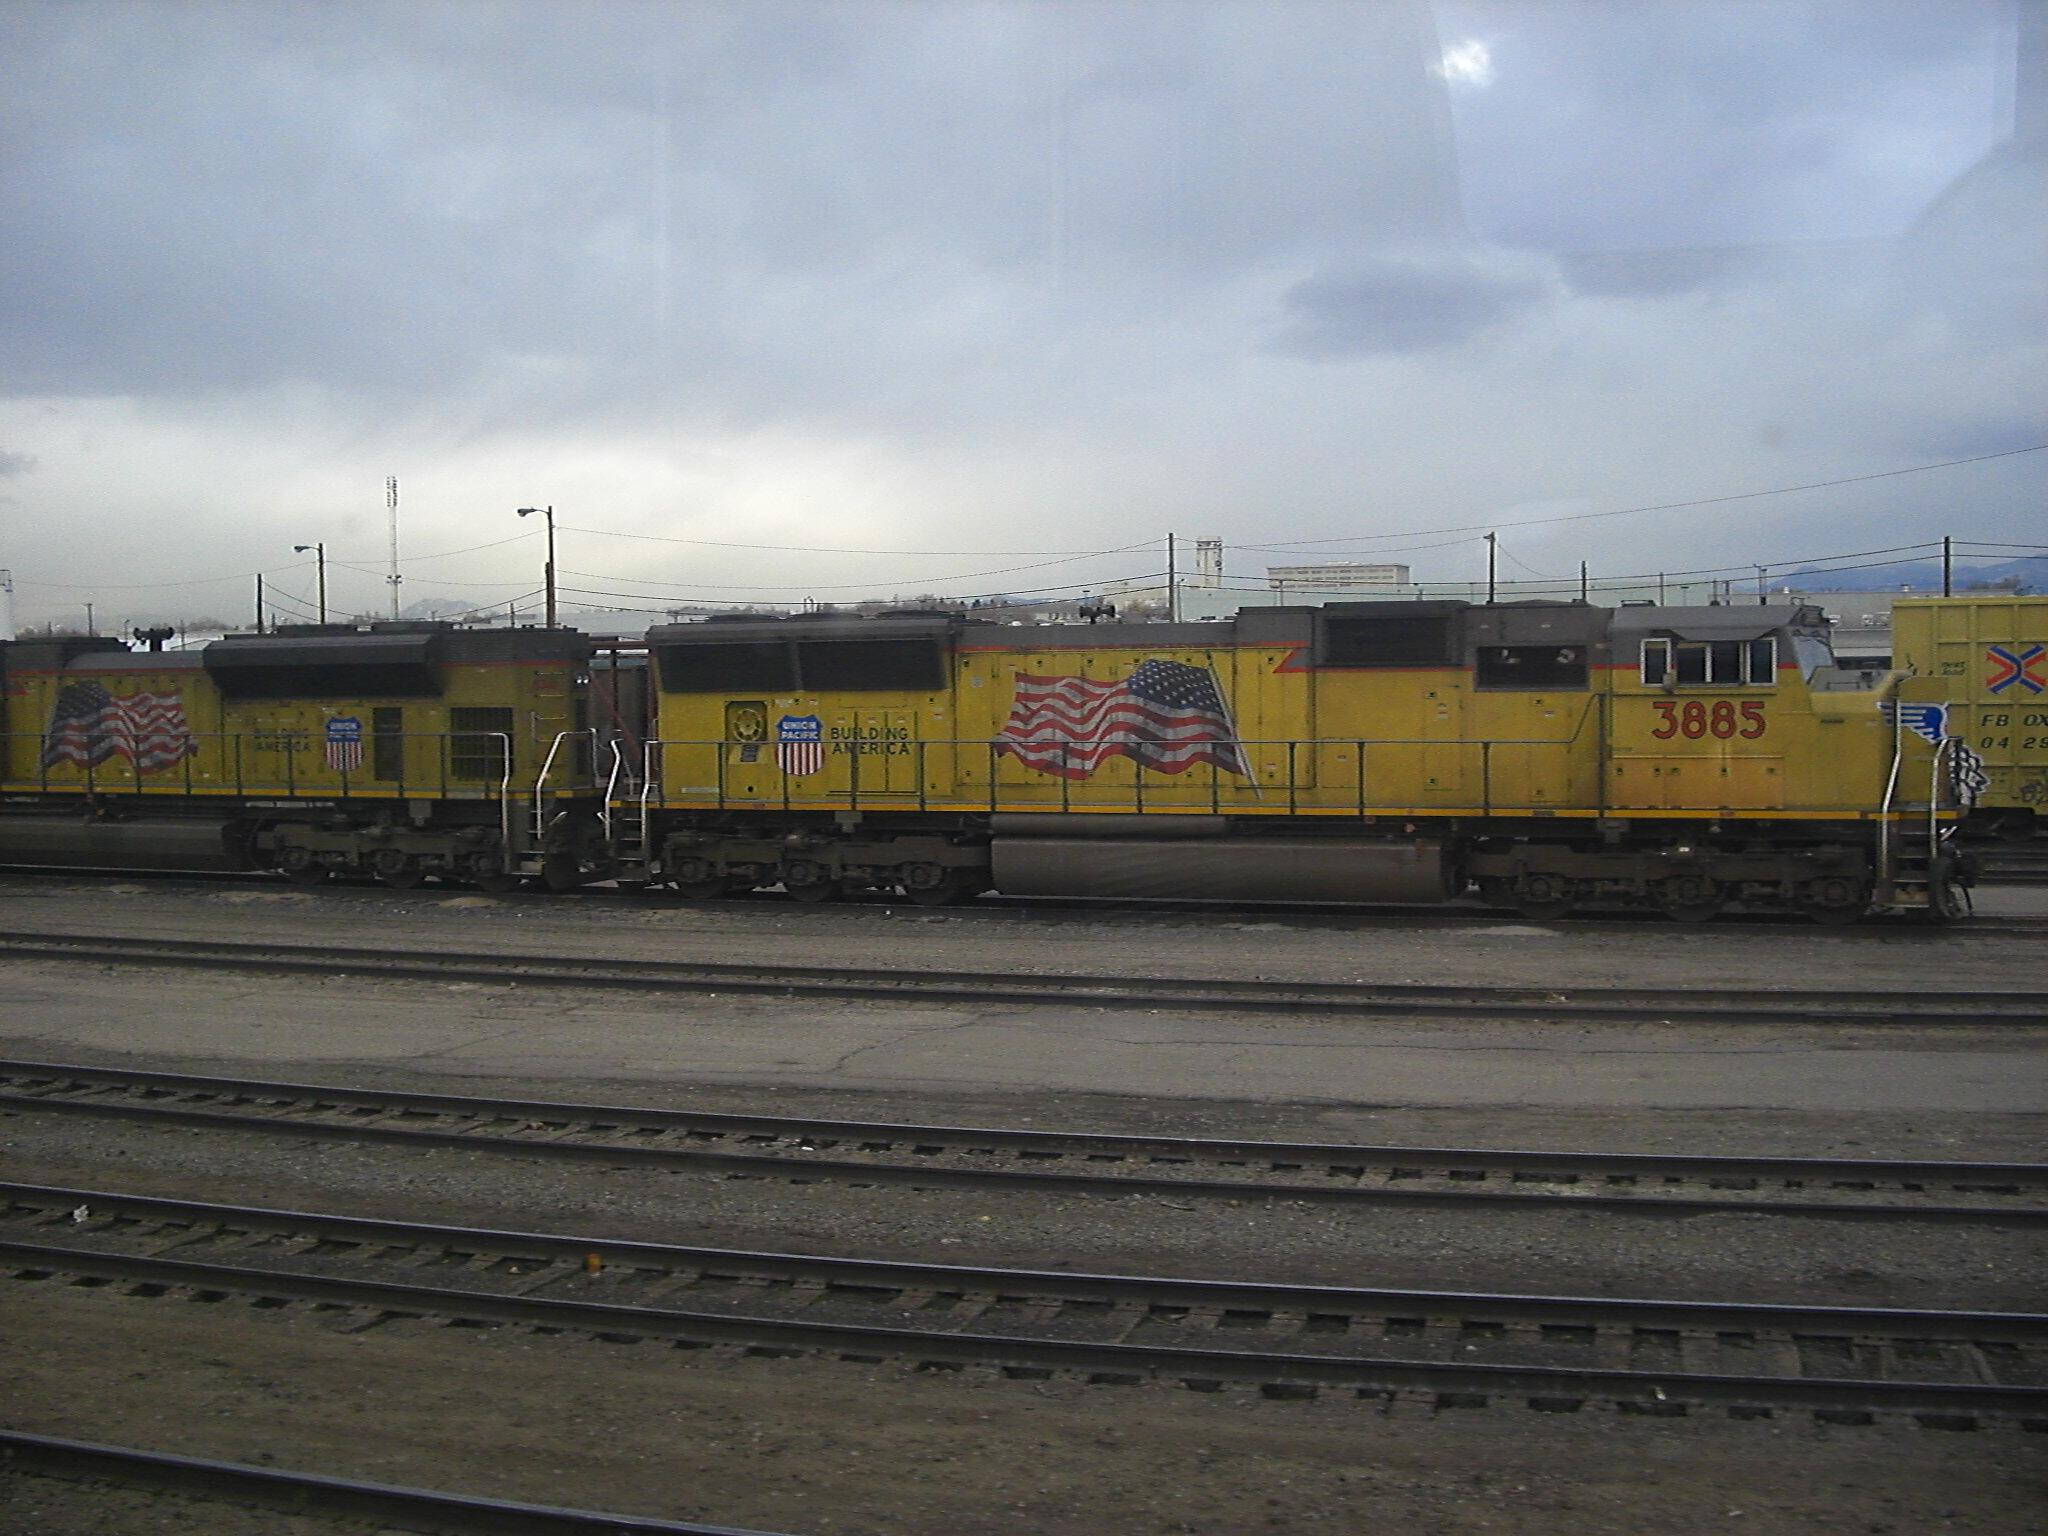 Union Pacific locomotive 3885